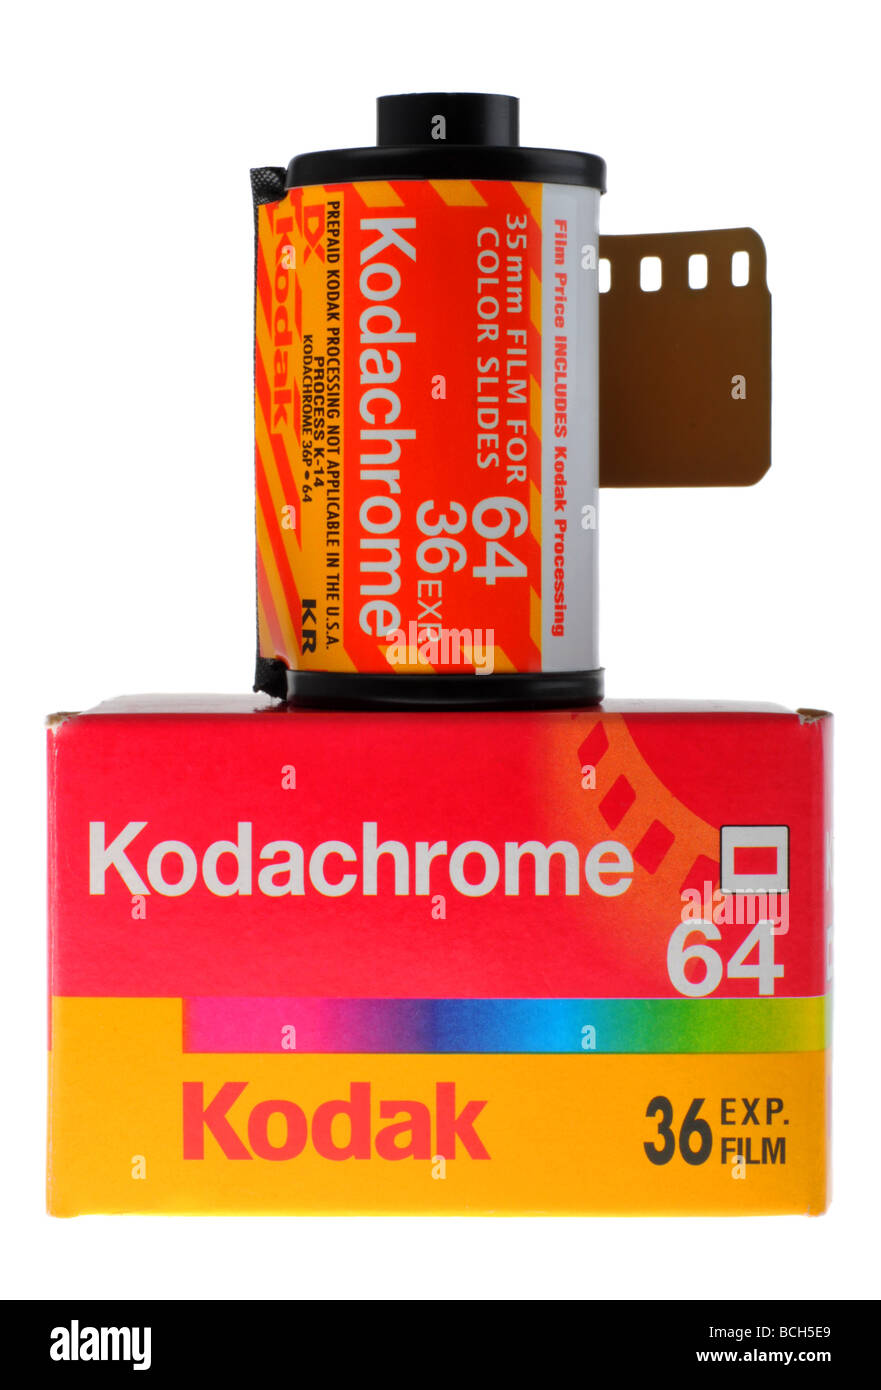 Film Kodachrome Kodak Photo Stock